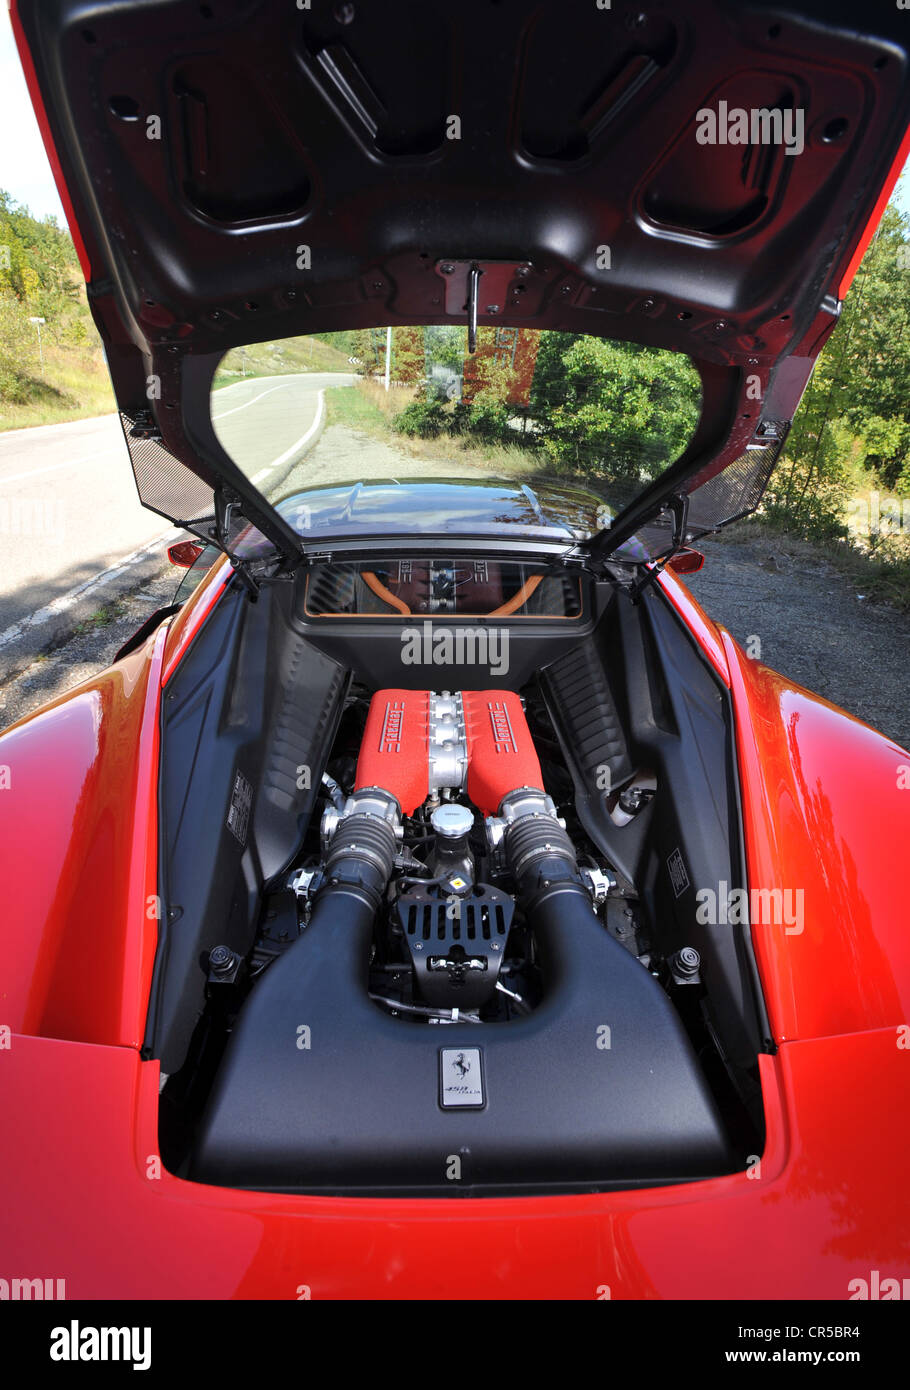 Sell My Car Fast >> 2011 Ferrari 458 Italia red Italian supercar in Modena - engine bay Stock Photo: 48676856 - Alamy